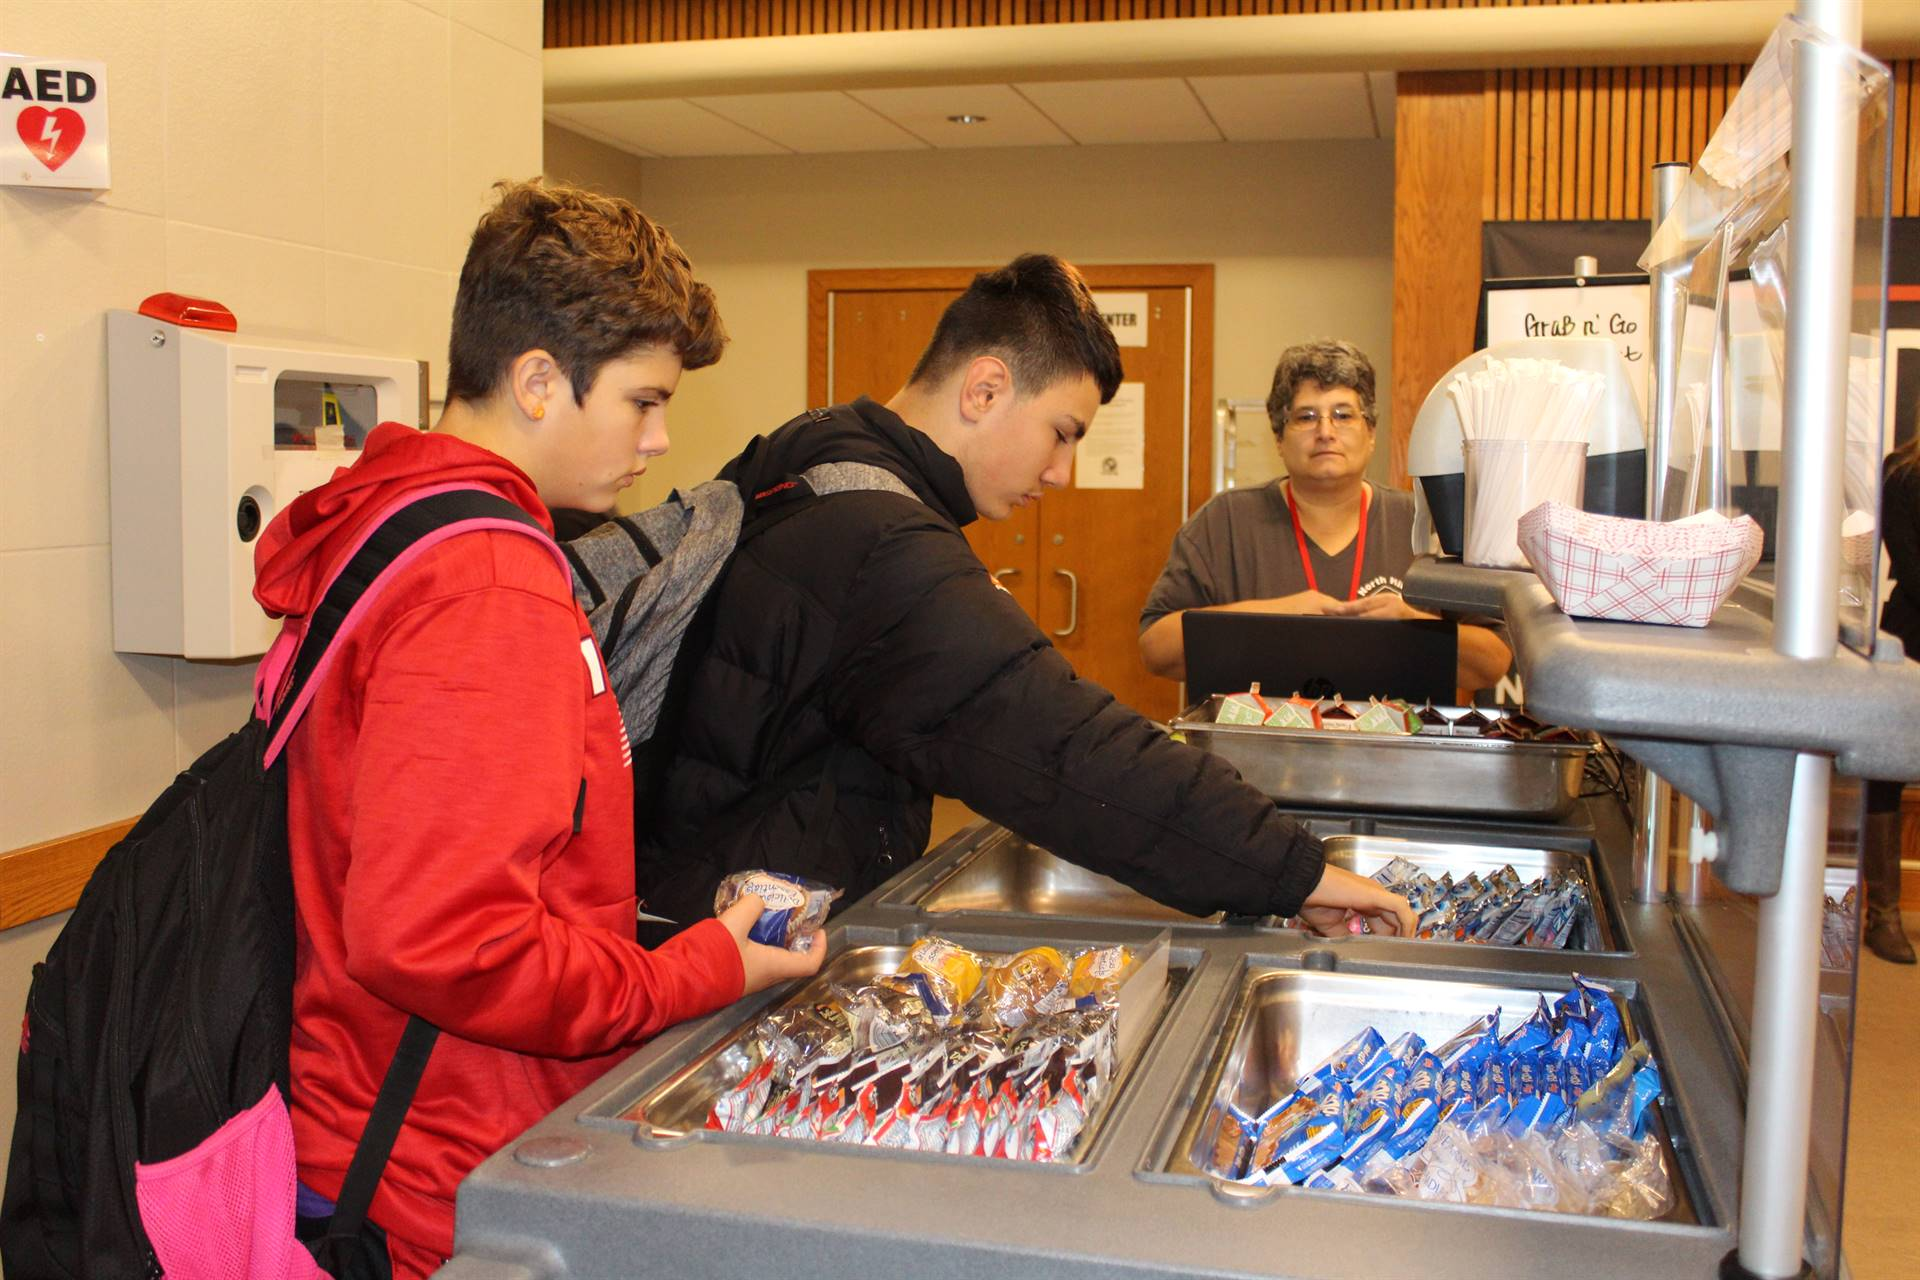 Photo of Middle School Boys Purchasing Breakfast from New Cart